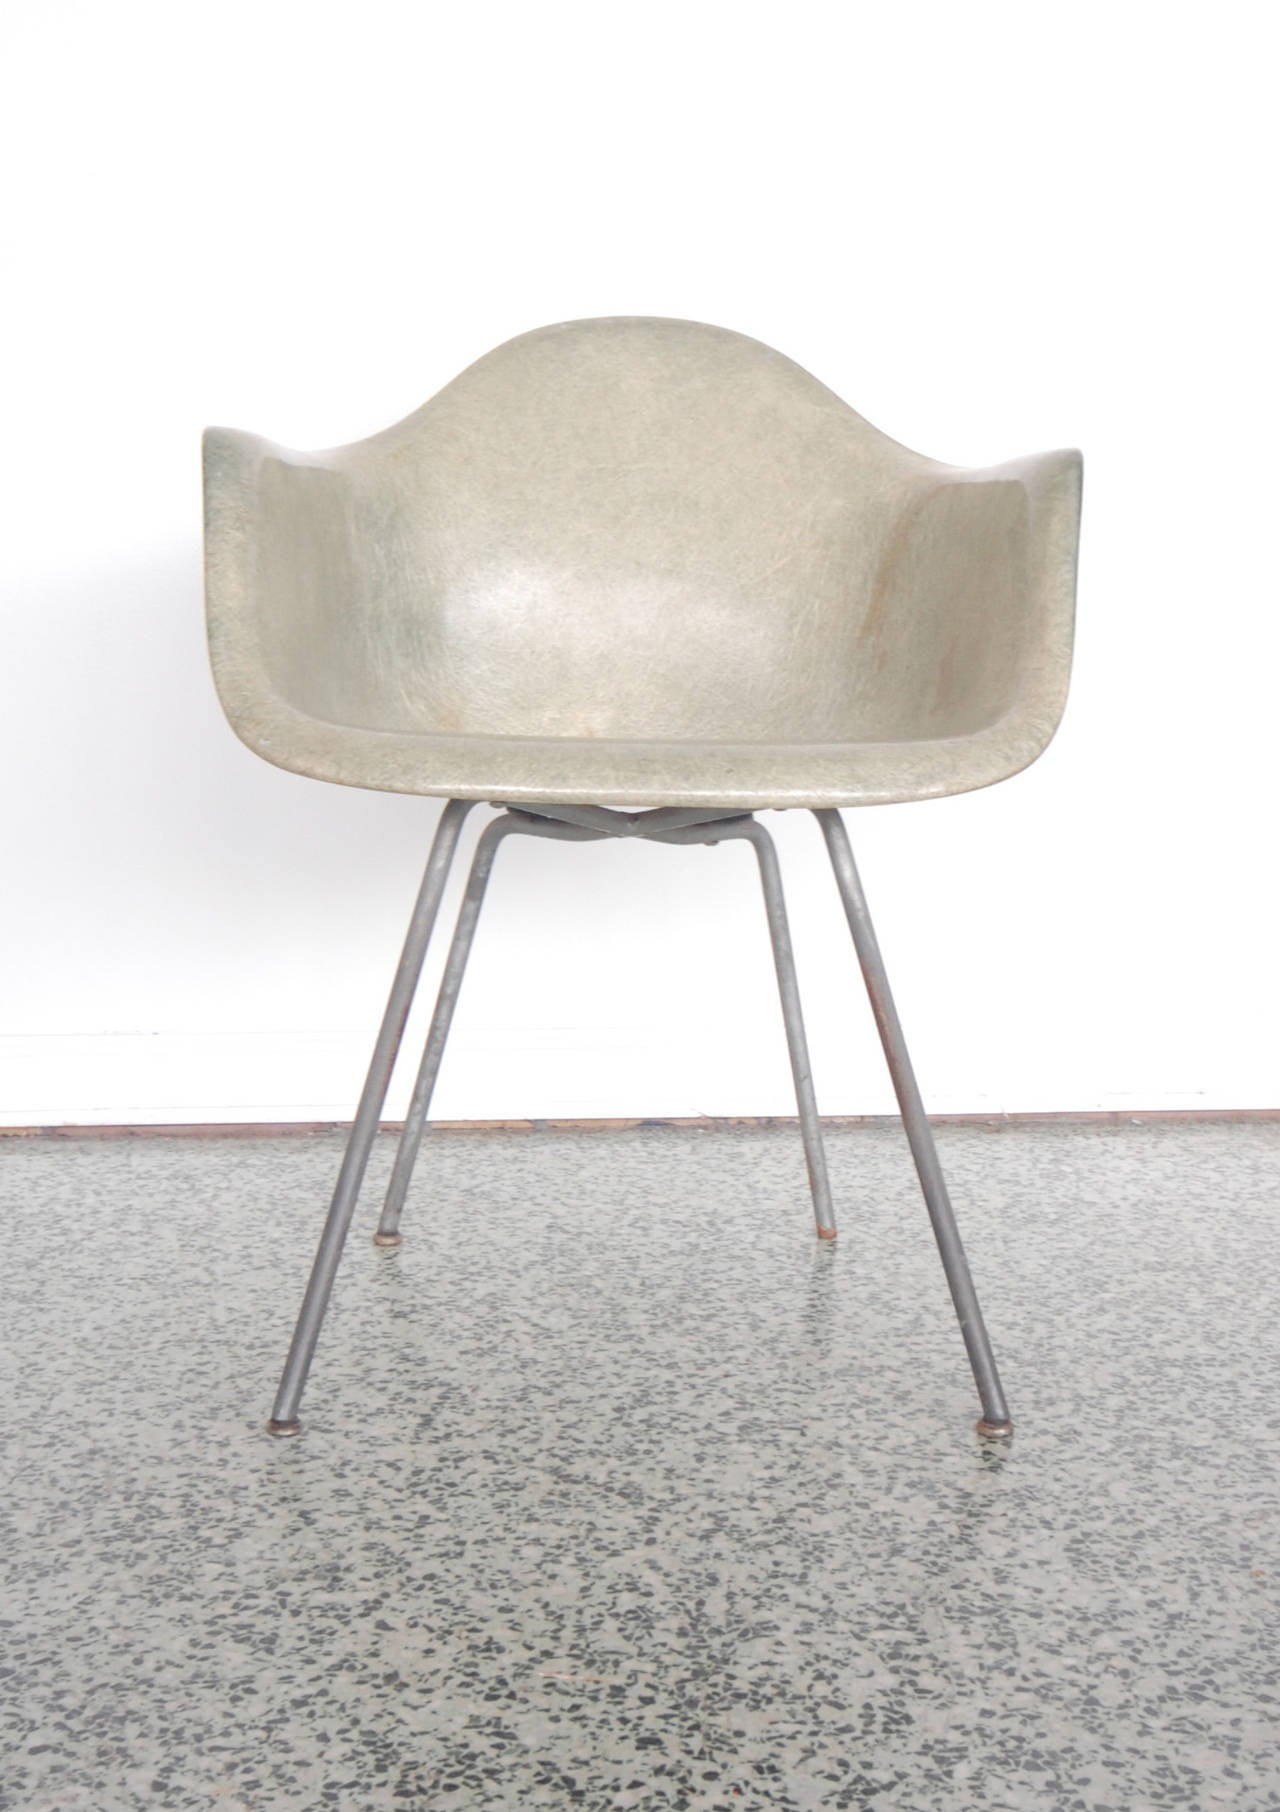 Faded green patina color gives this chair a grey color with solid X bases of an intermediate height with